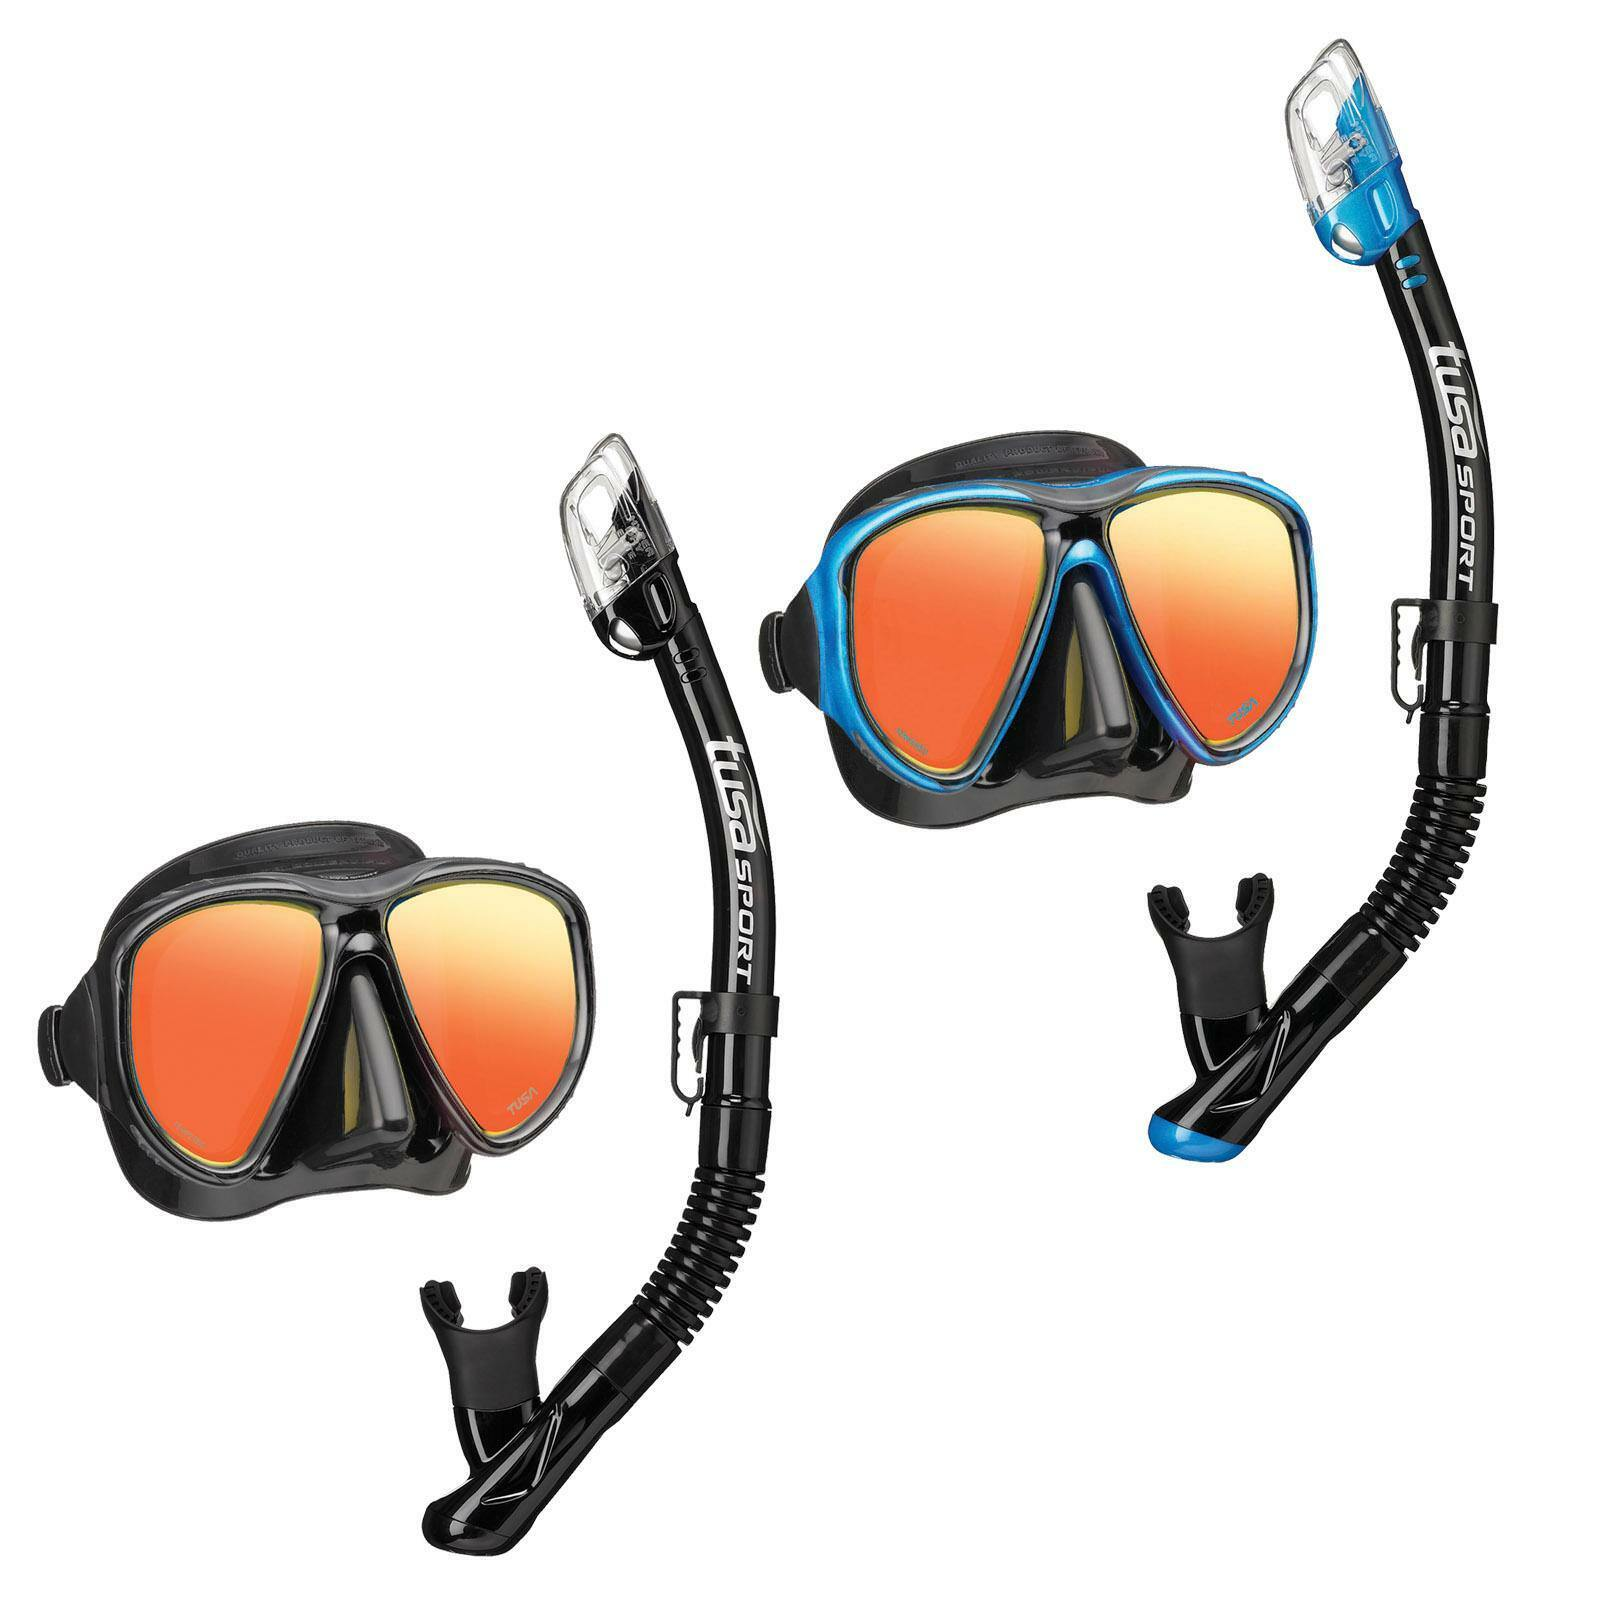 Tusa Snorkel Set - Powerview Dry Mirror Combo for Adult